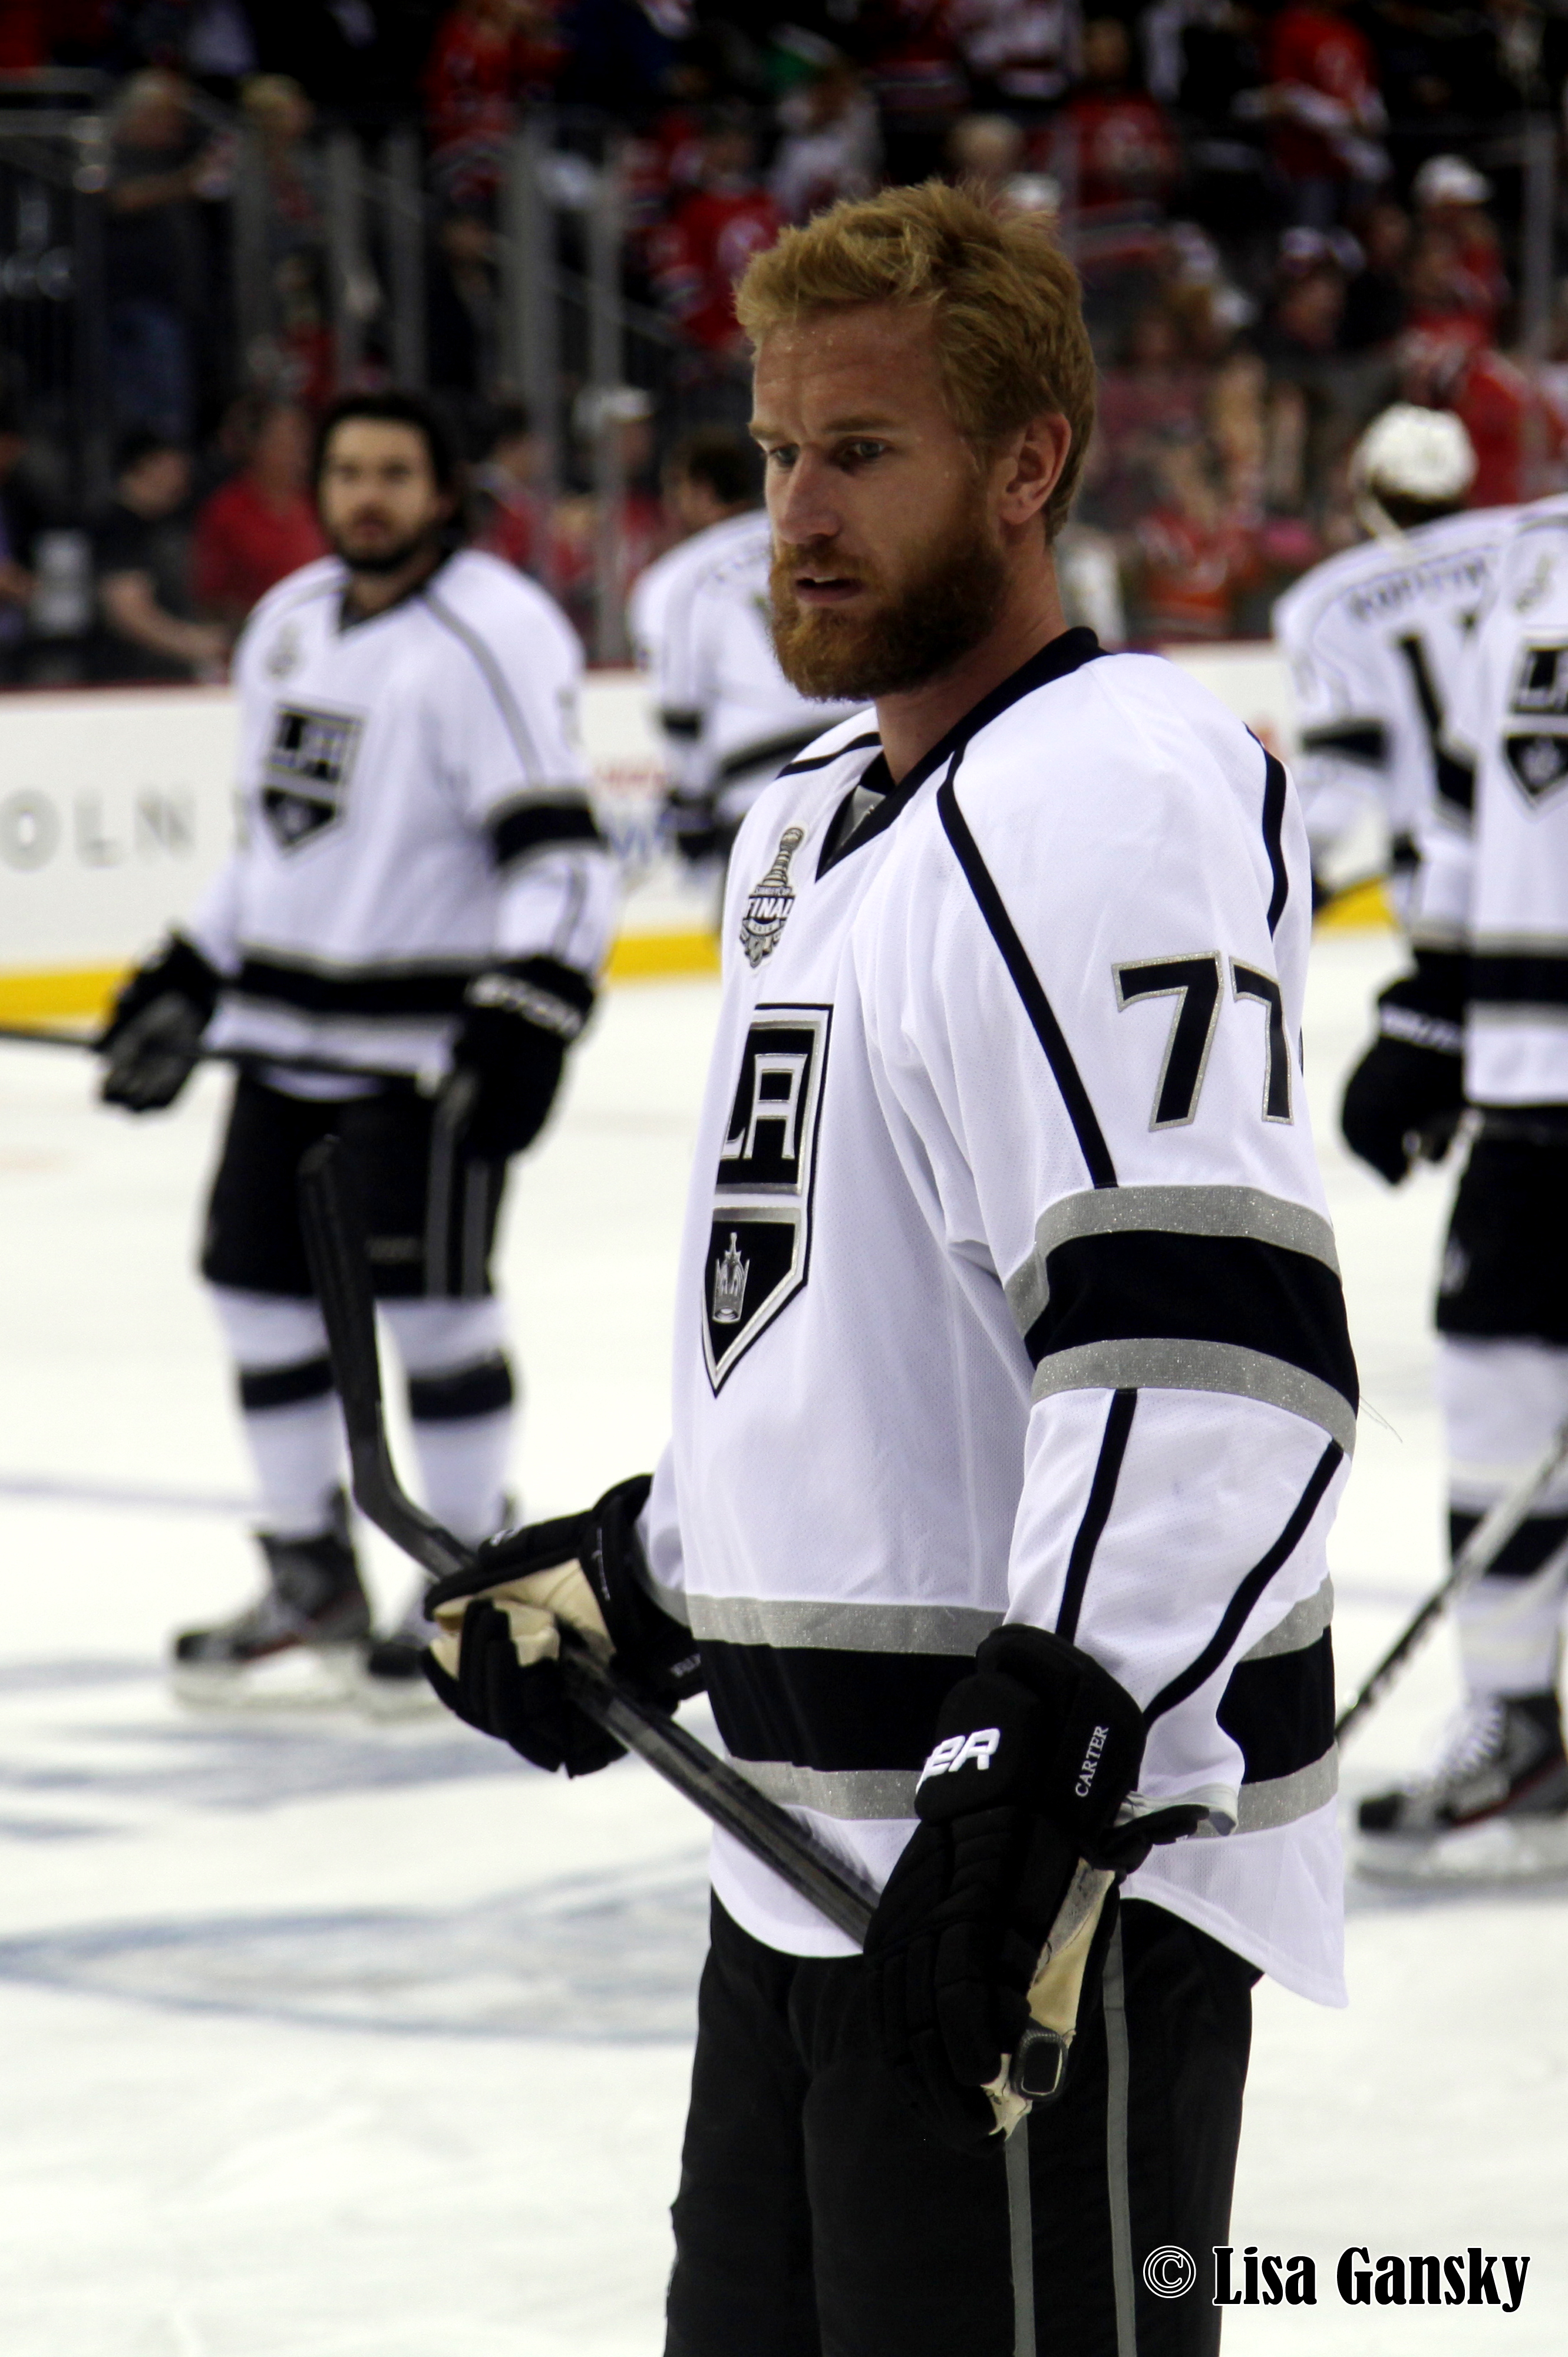 Former Flyers Jeff Carter was back in the building Tuesday night against his old squad. Credit: Lisa Gansky - Flickr: IMG_4666.